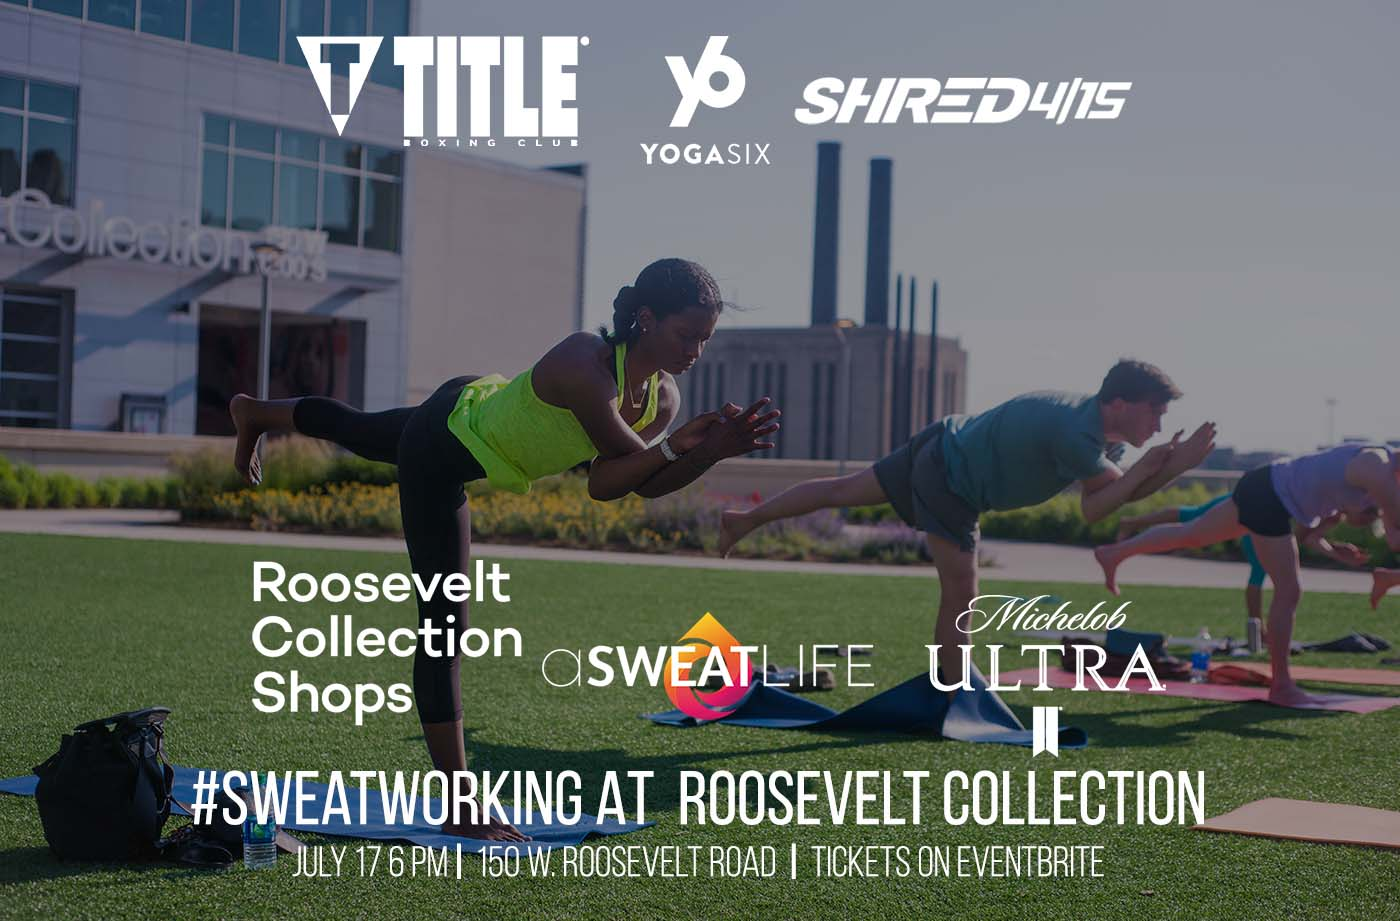 roosevelt collection sweatworking